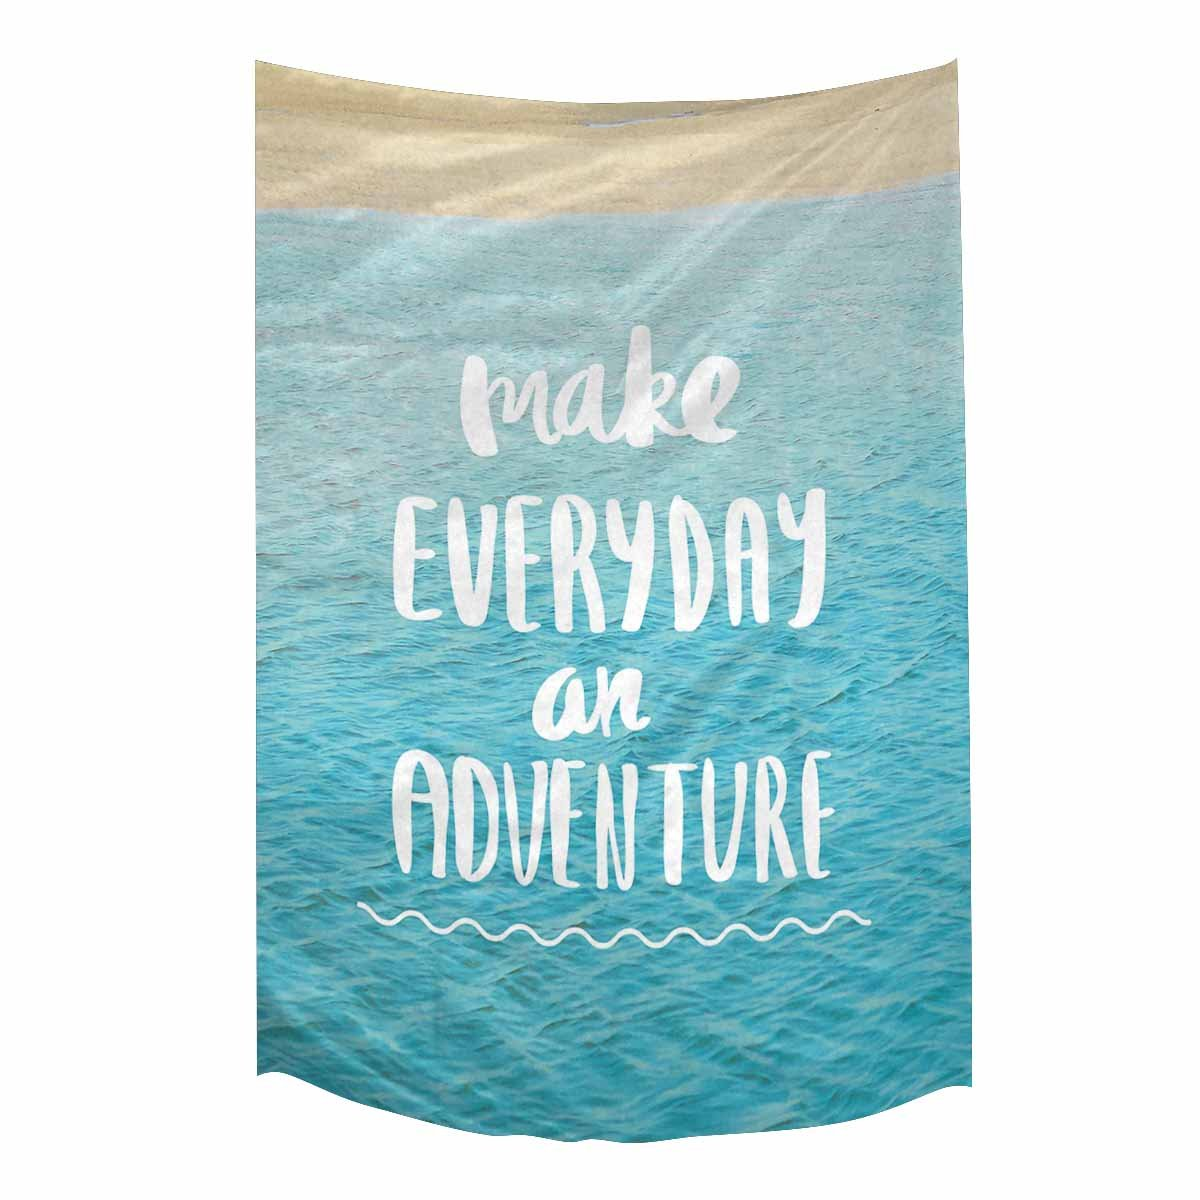 InterestPrint Inspirational Quote On Blue Ocean Sea Make Everyday an Adventure Tapestry Wall Hanging Hippy Tapestries Beach Throw College Dorm Decor, 60W X 90L Inch